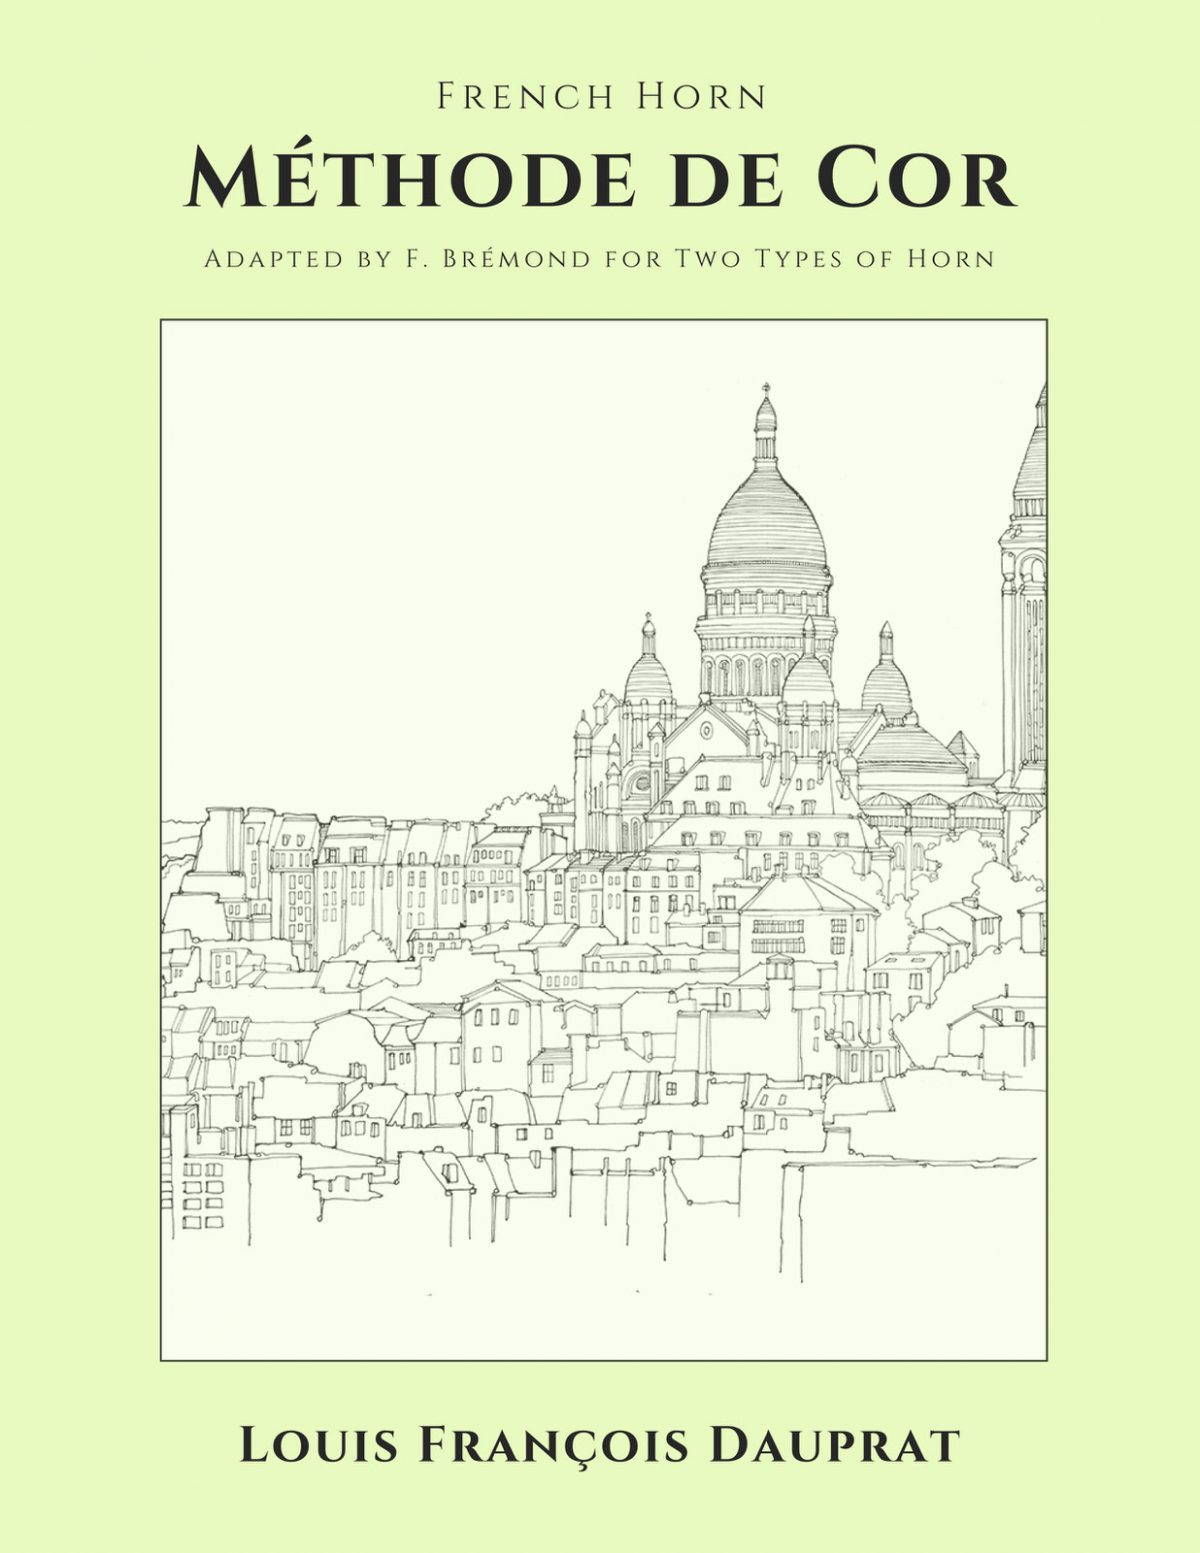 Dauprat, Method de cor F. Bremond